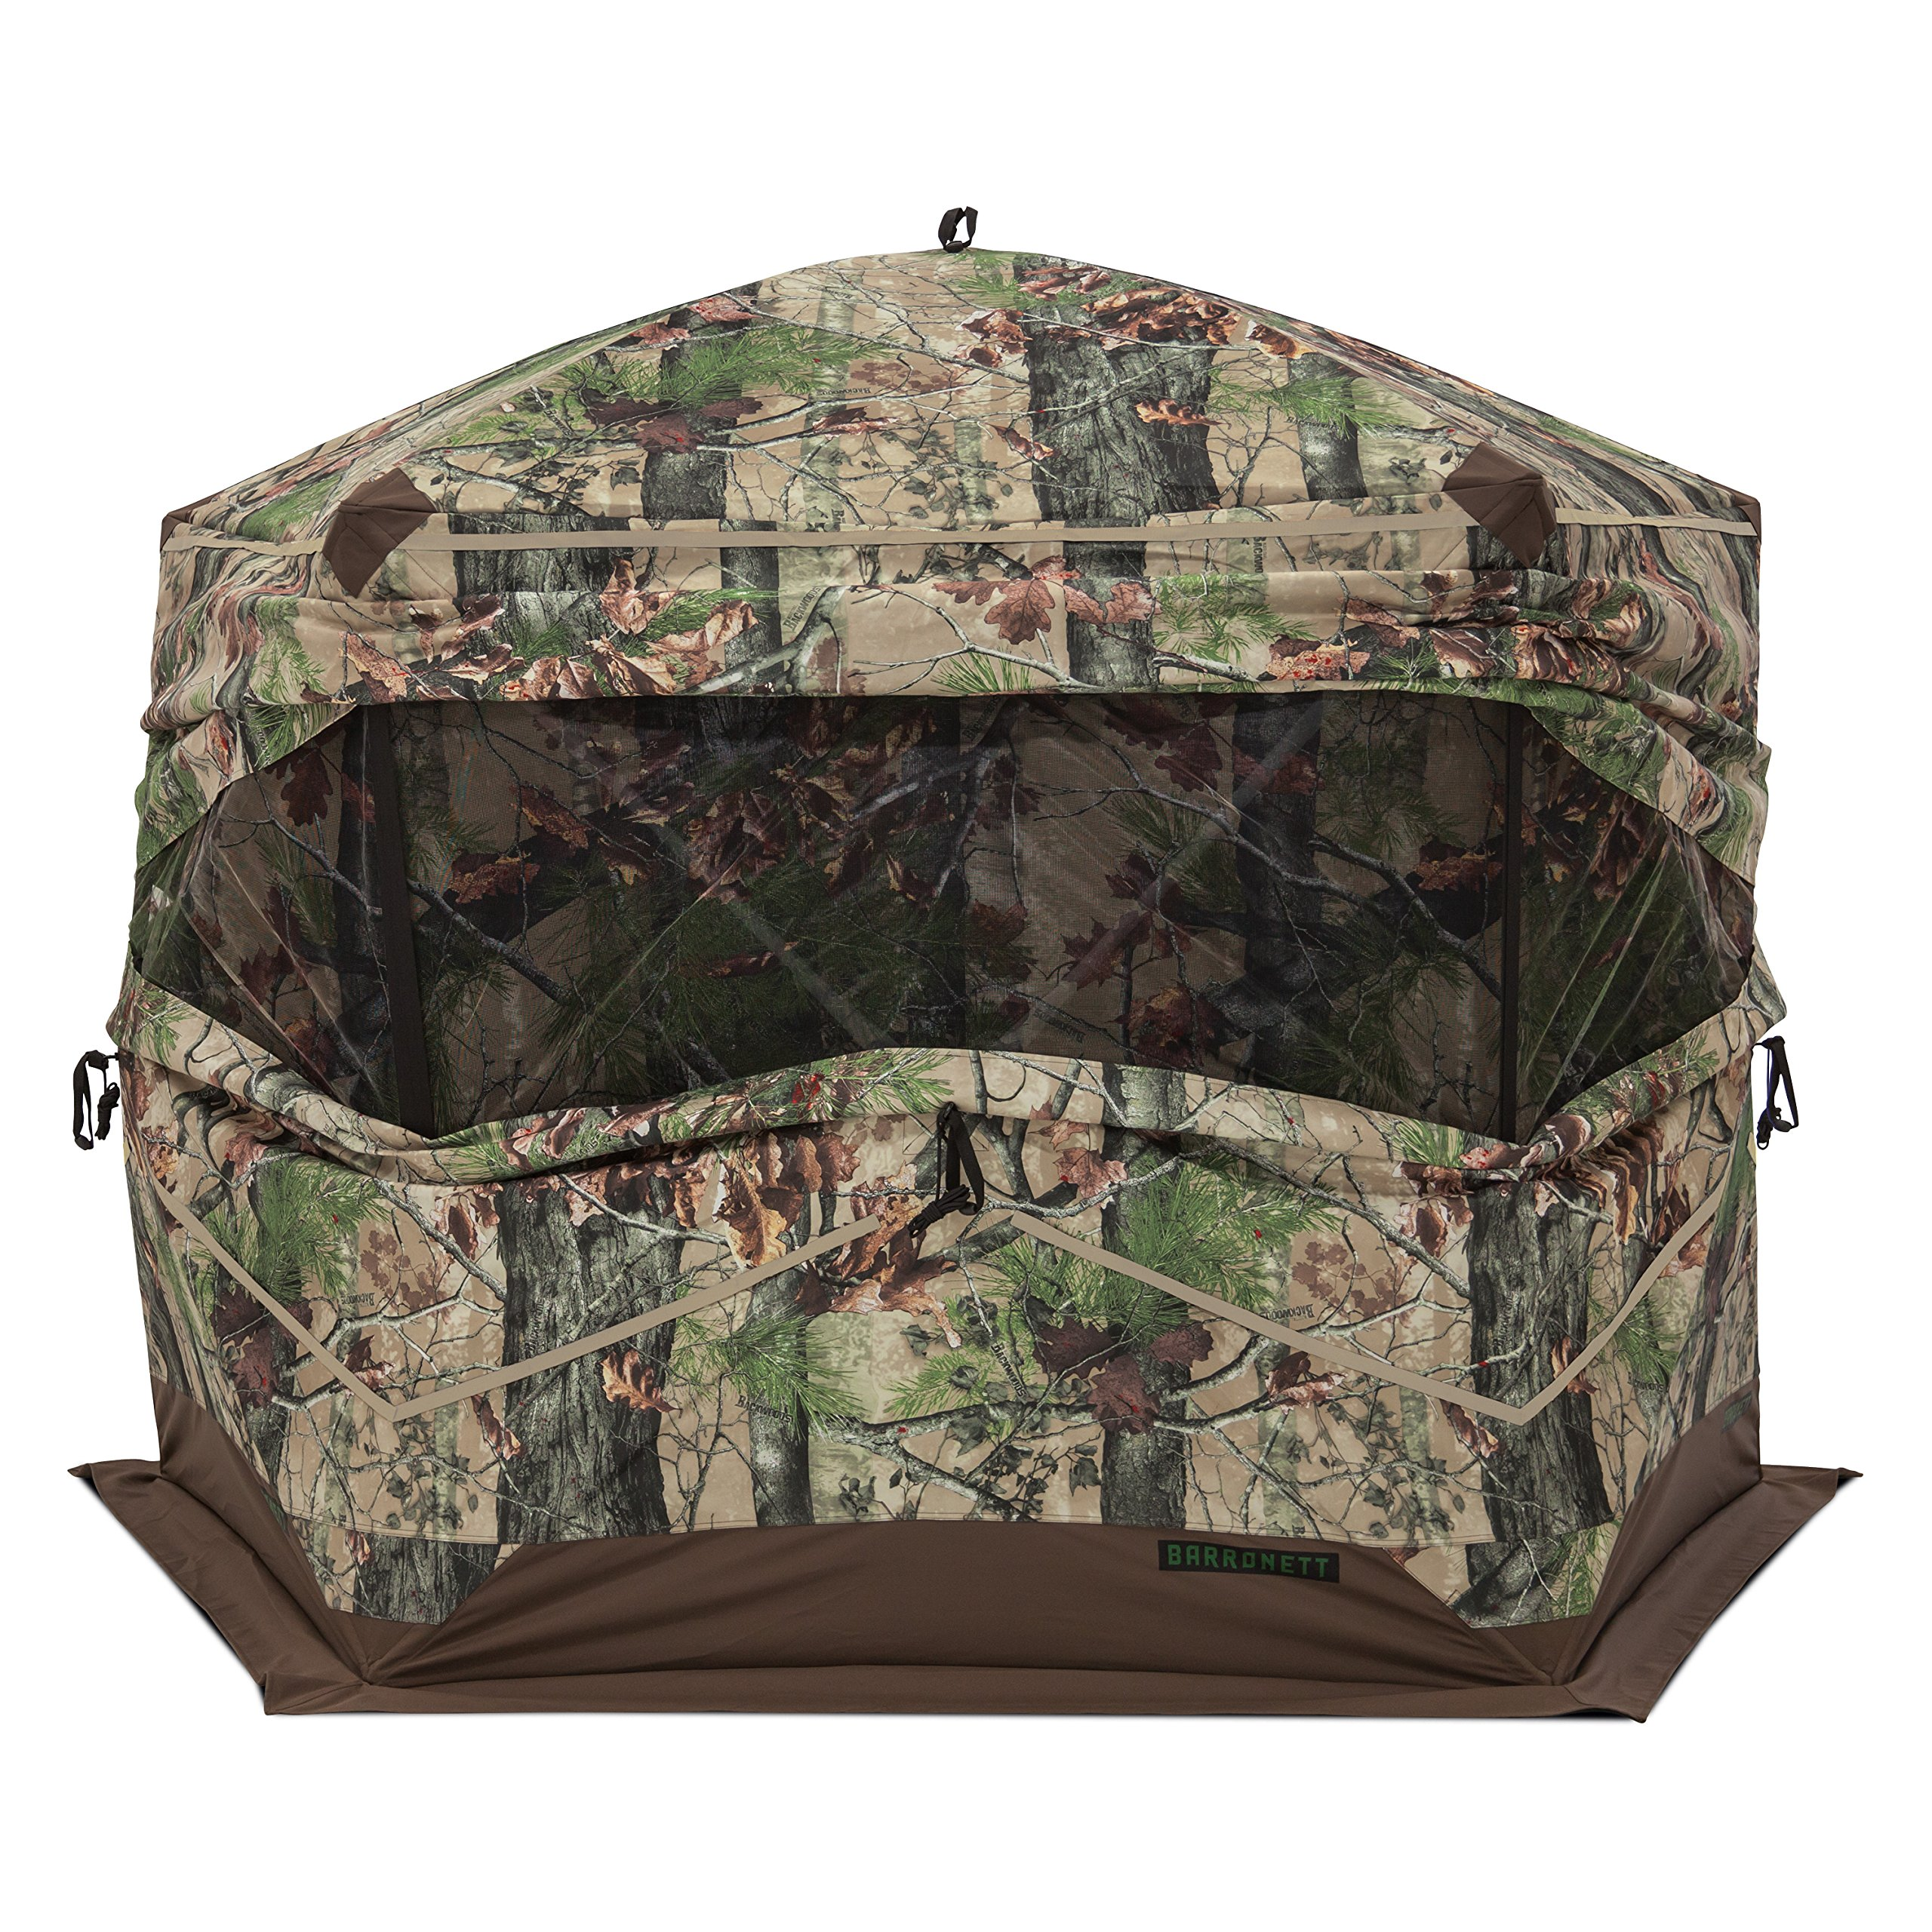 Barronett Blinds Ox 5 Ox 5-Sided Hunting Blind, Backwoods Camo